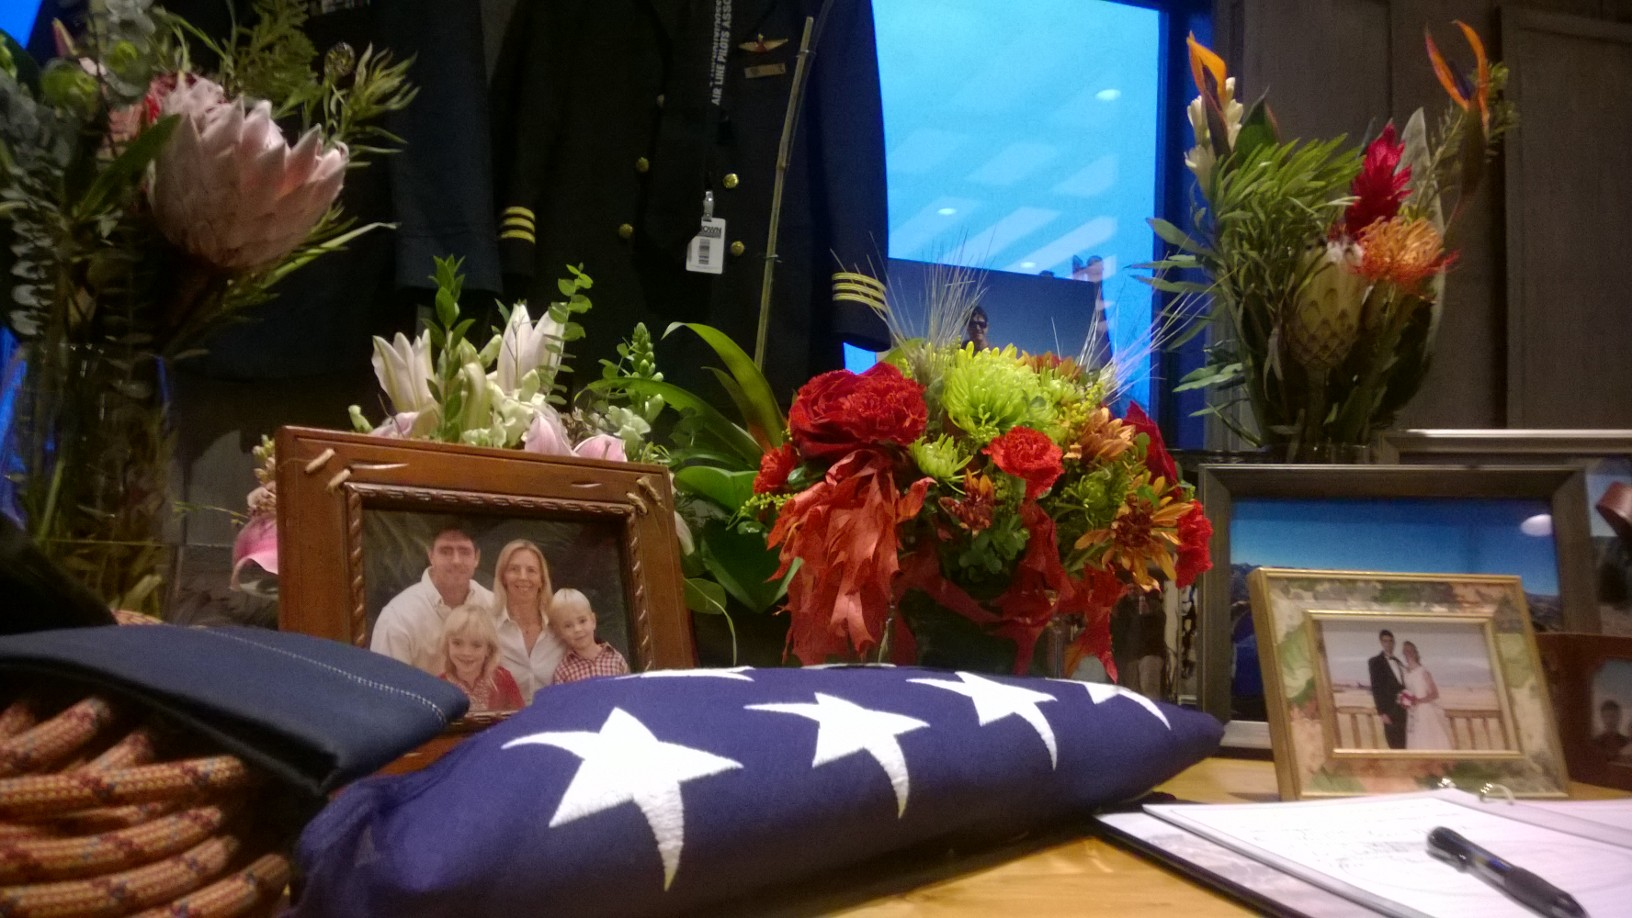 In remembrance of Mike Lydon